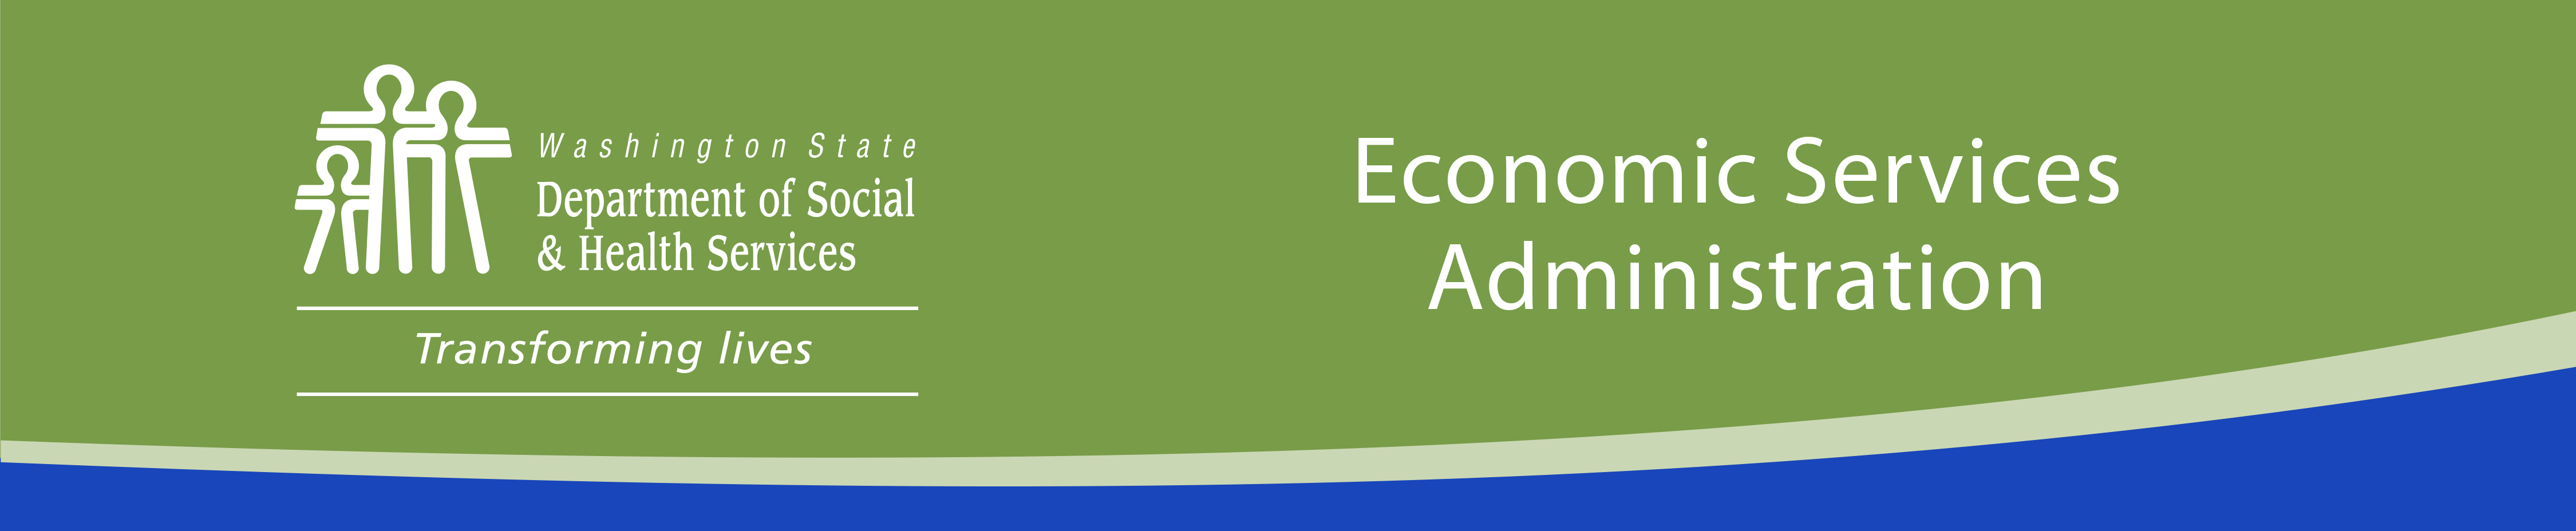 Washington Economic Services Administration